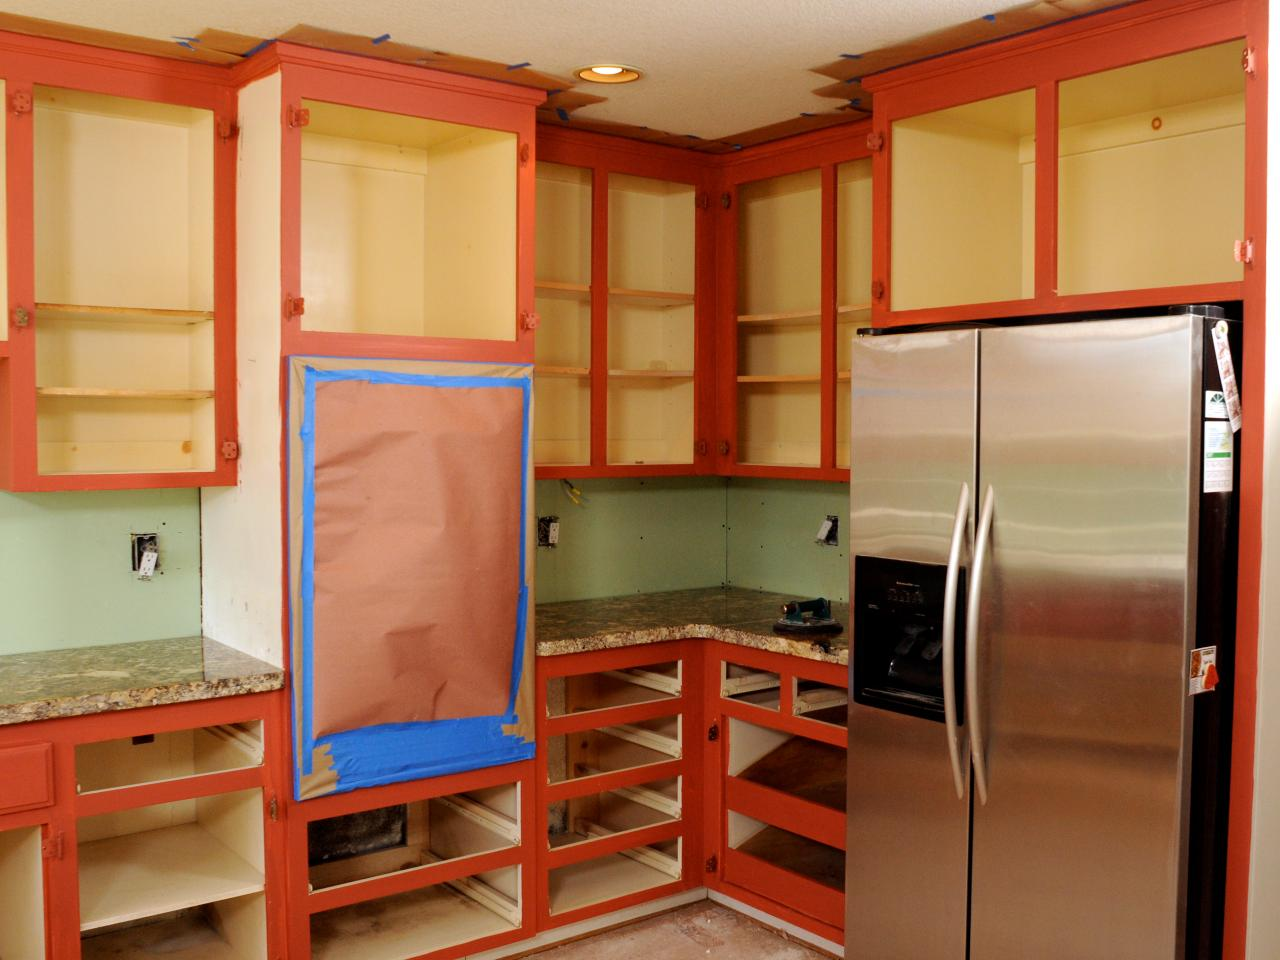 Diy Reface Kitchen Cabinets Ideas For Diy Kitchen Cabinets Designs